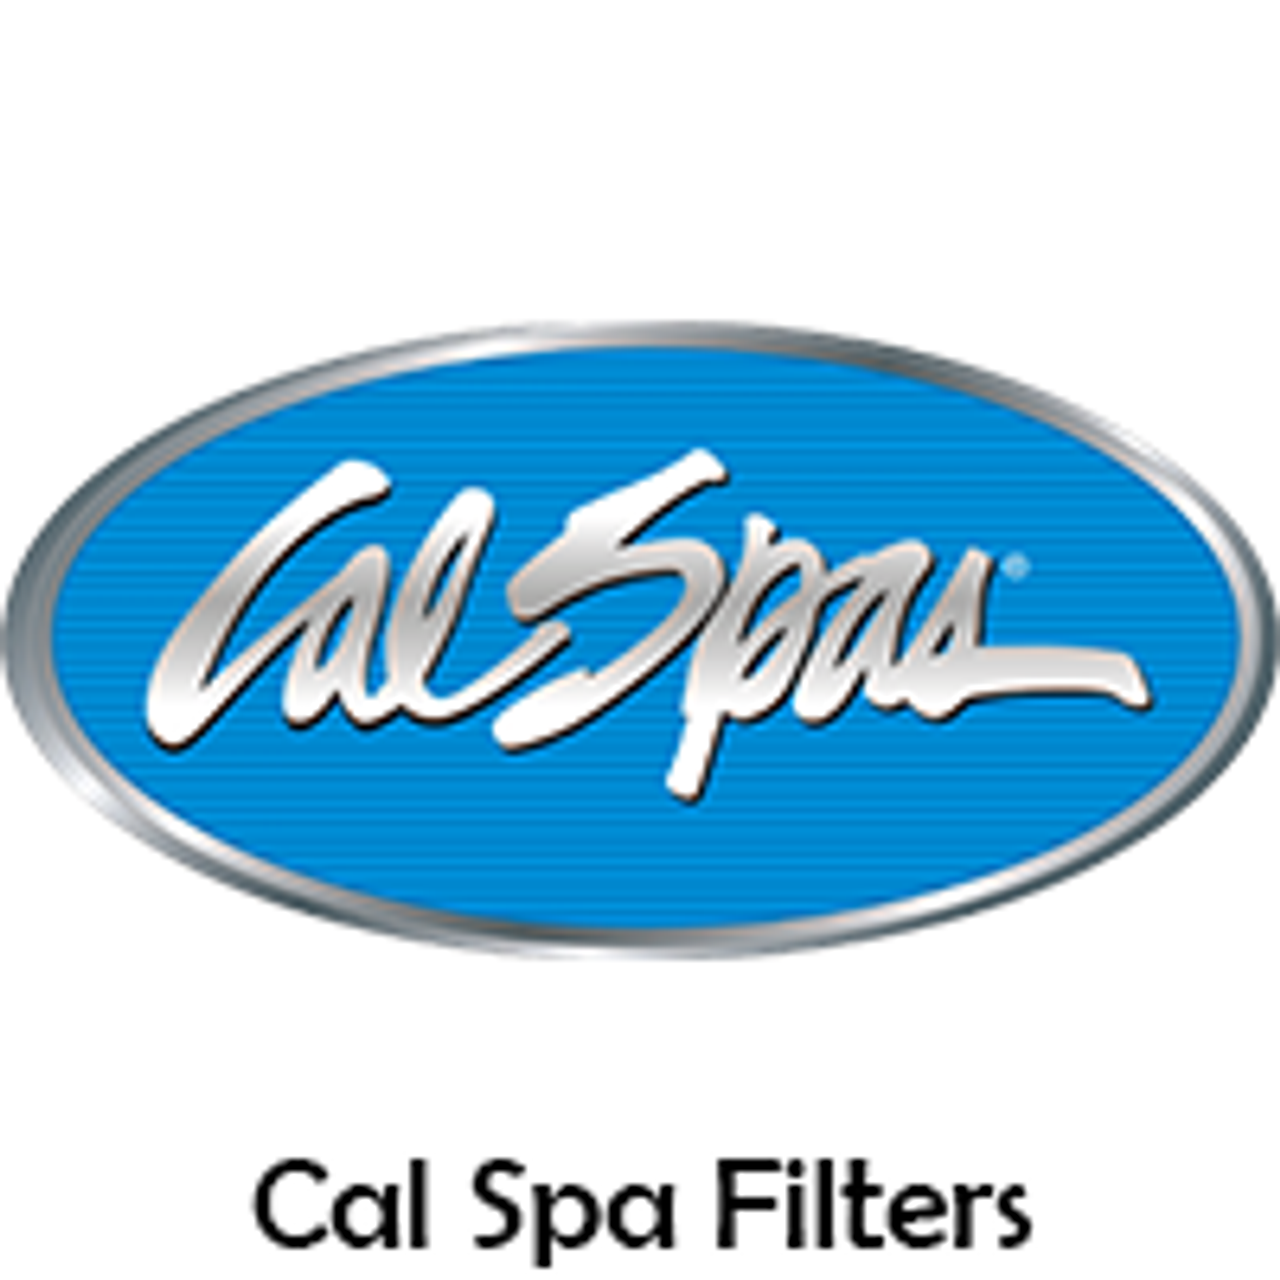 Cal Spa Filters